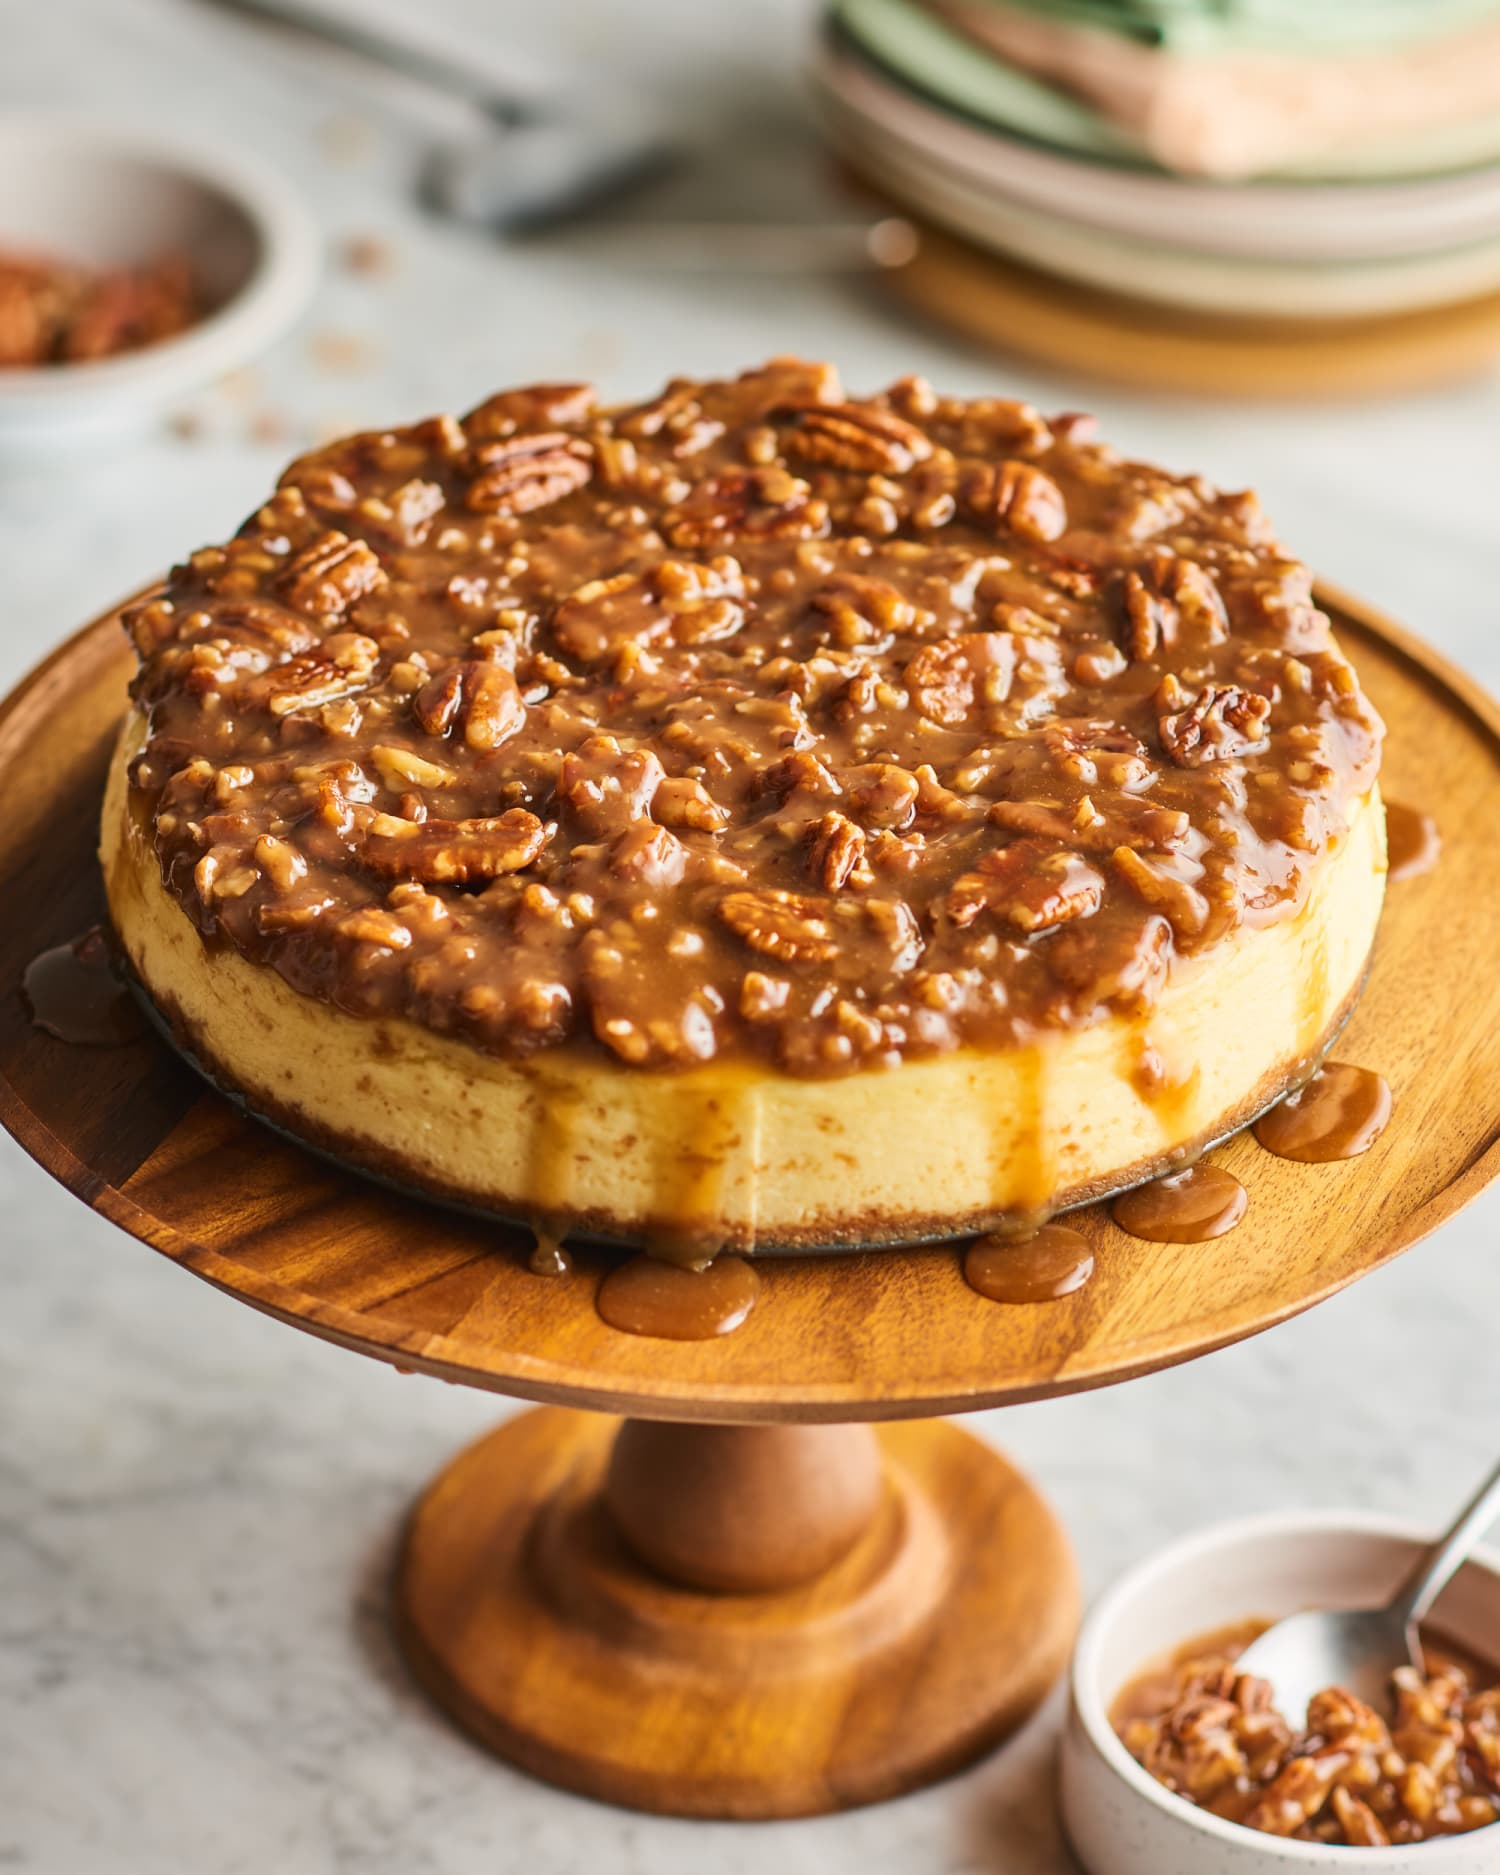 Pecan Pie Cheesecake Is Over-the-Top in All the Right Ways